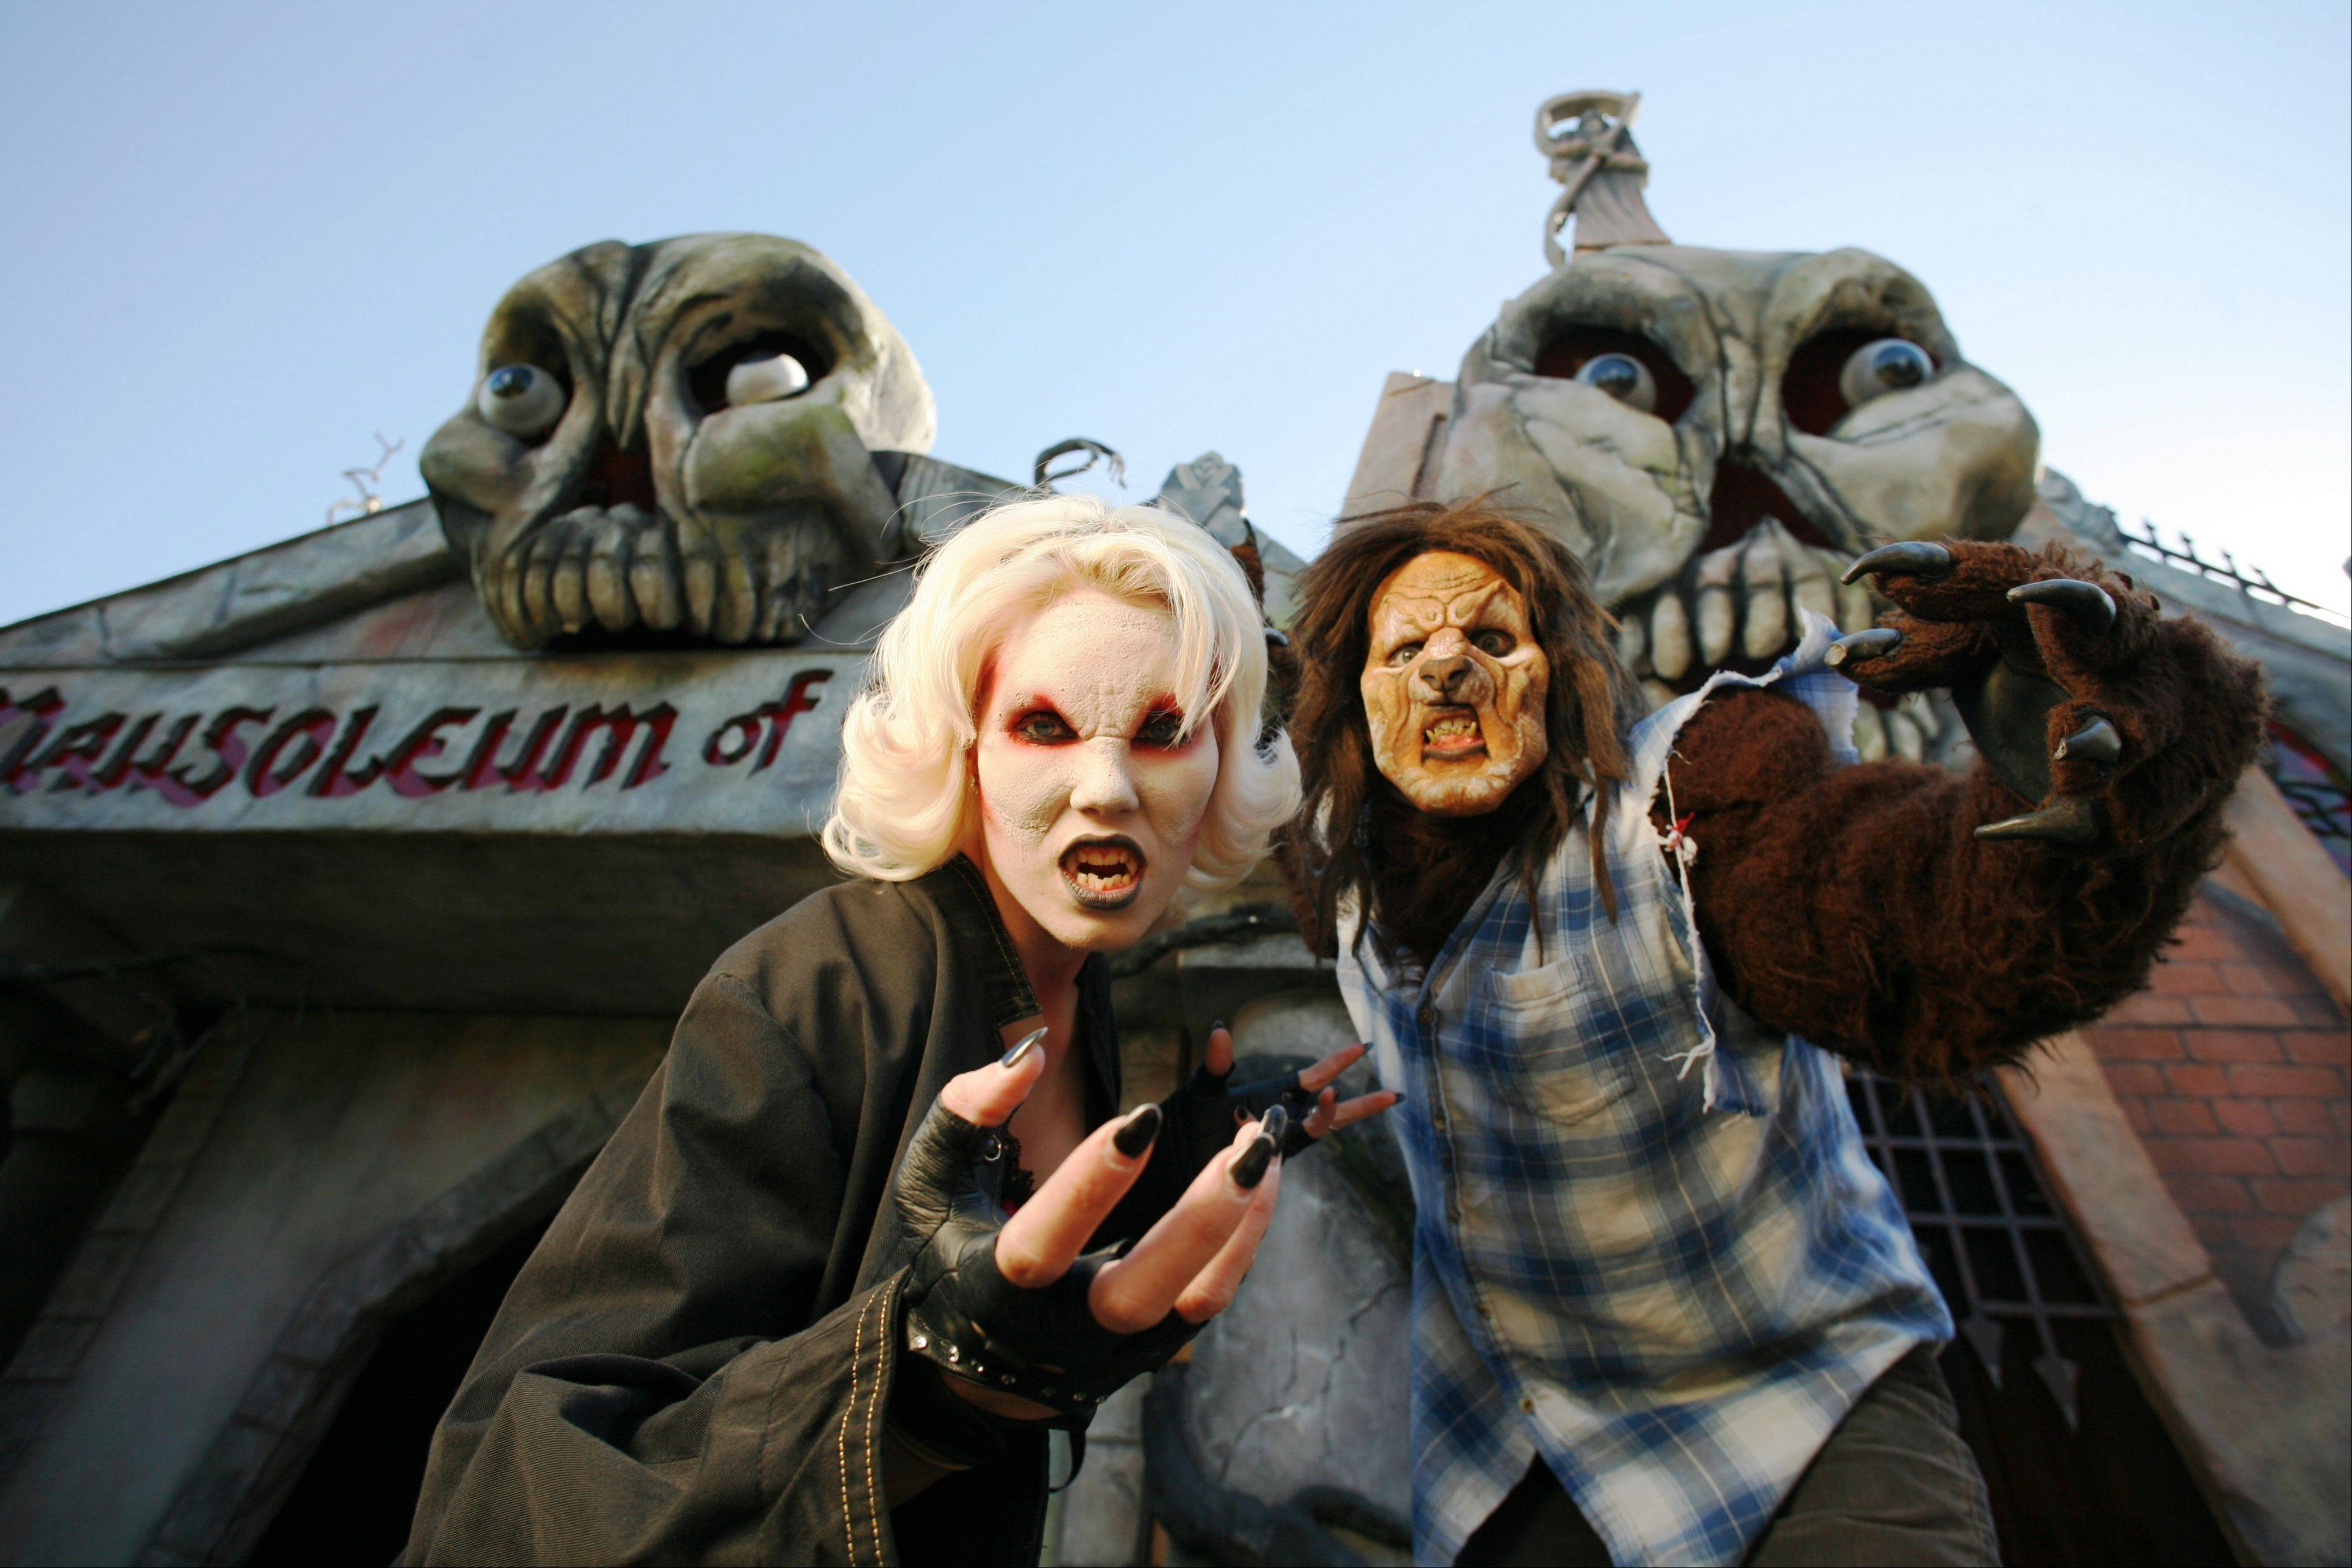 Those who dare can tour the Mausoleum of Terror and mingle with some creepy characters this weekend as part of Frightfest at Six Flags Great America in Gurnee.